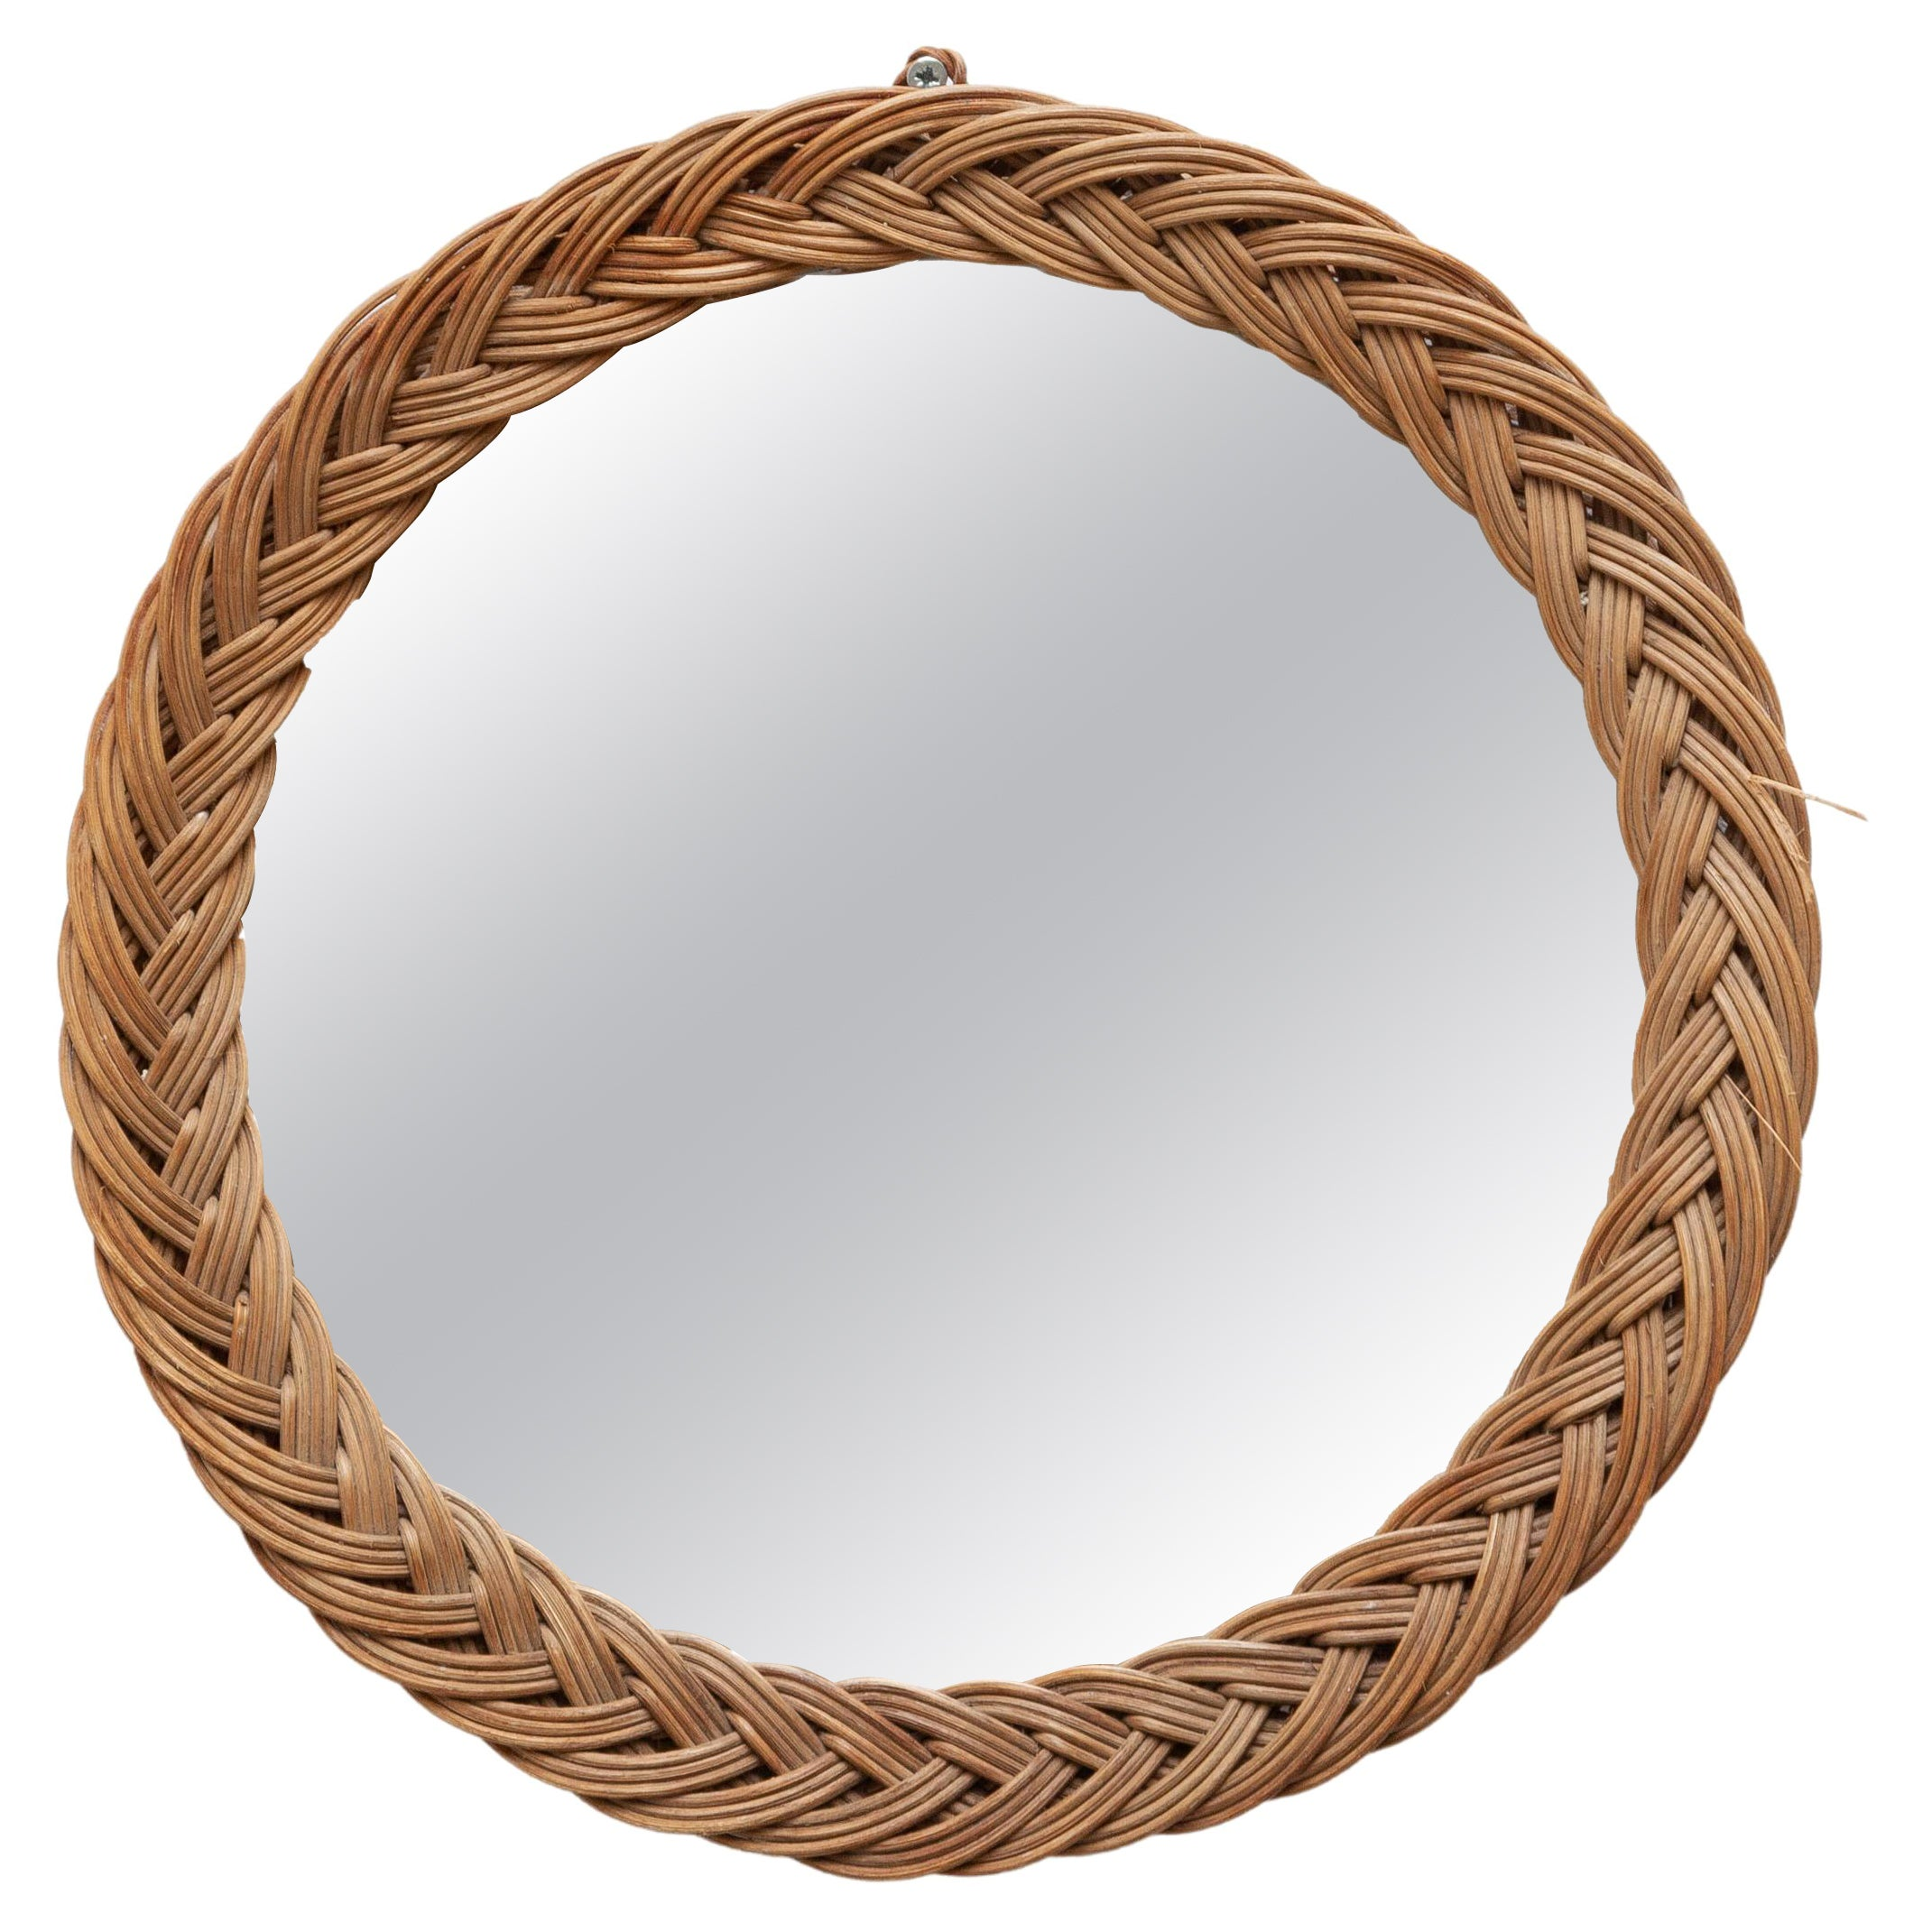 Round Wall Mirror in Wicker Frame, France, 1950s